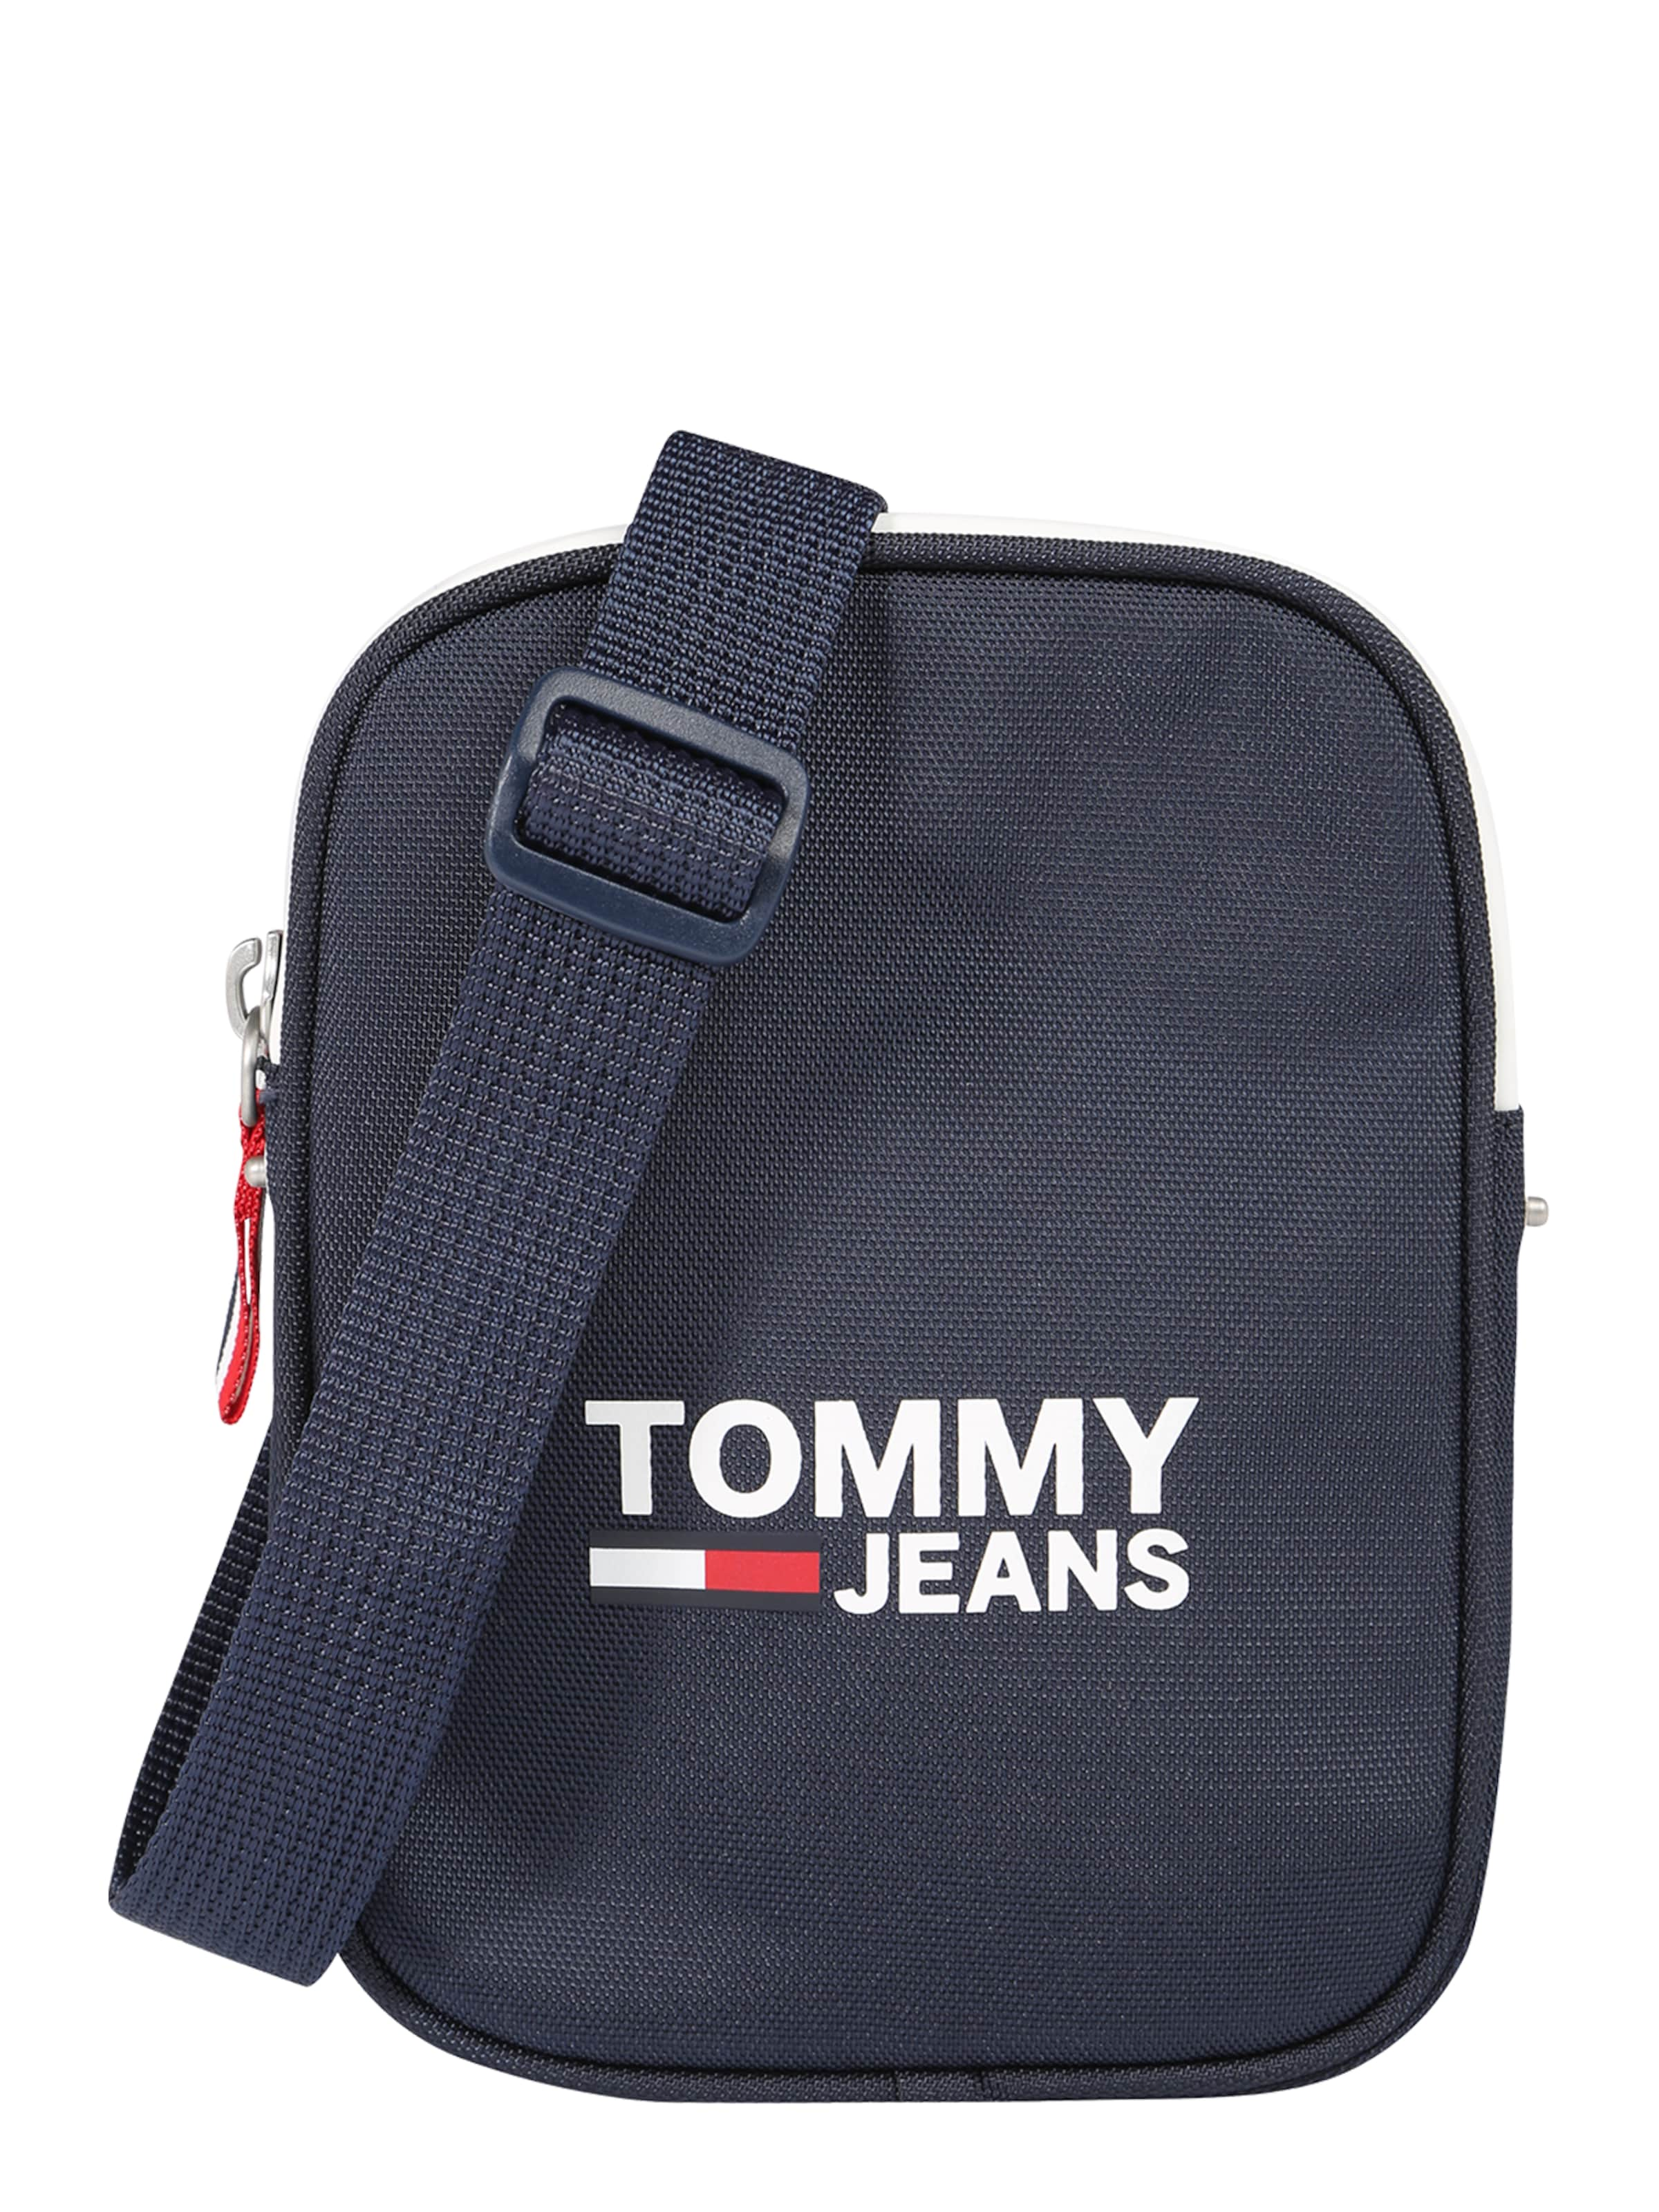 'tjw Jeans In Tommy Rot Tasche Cool Compact' City xBCerdo